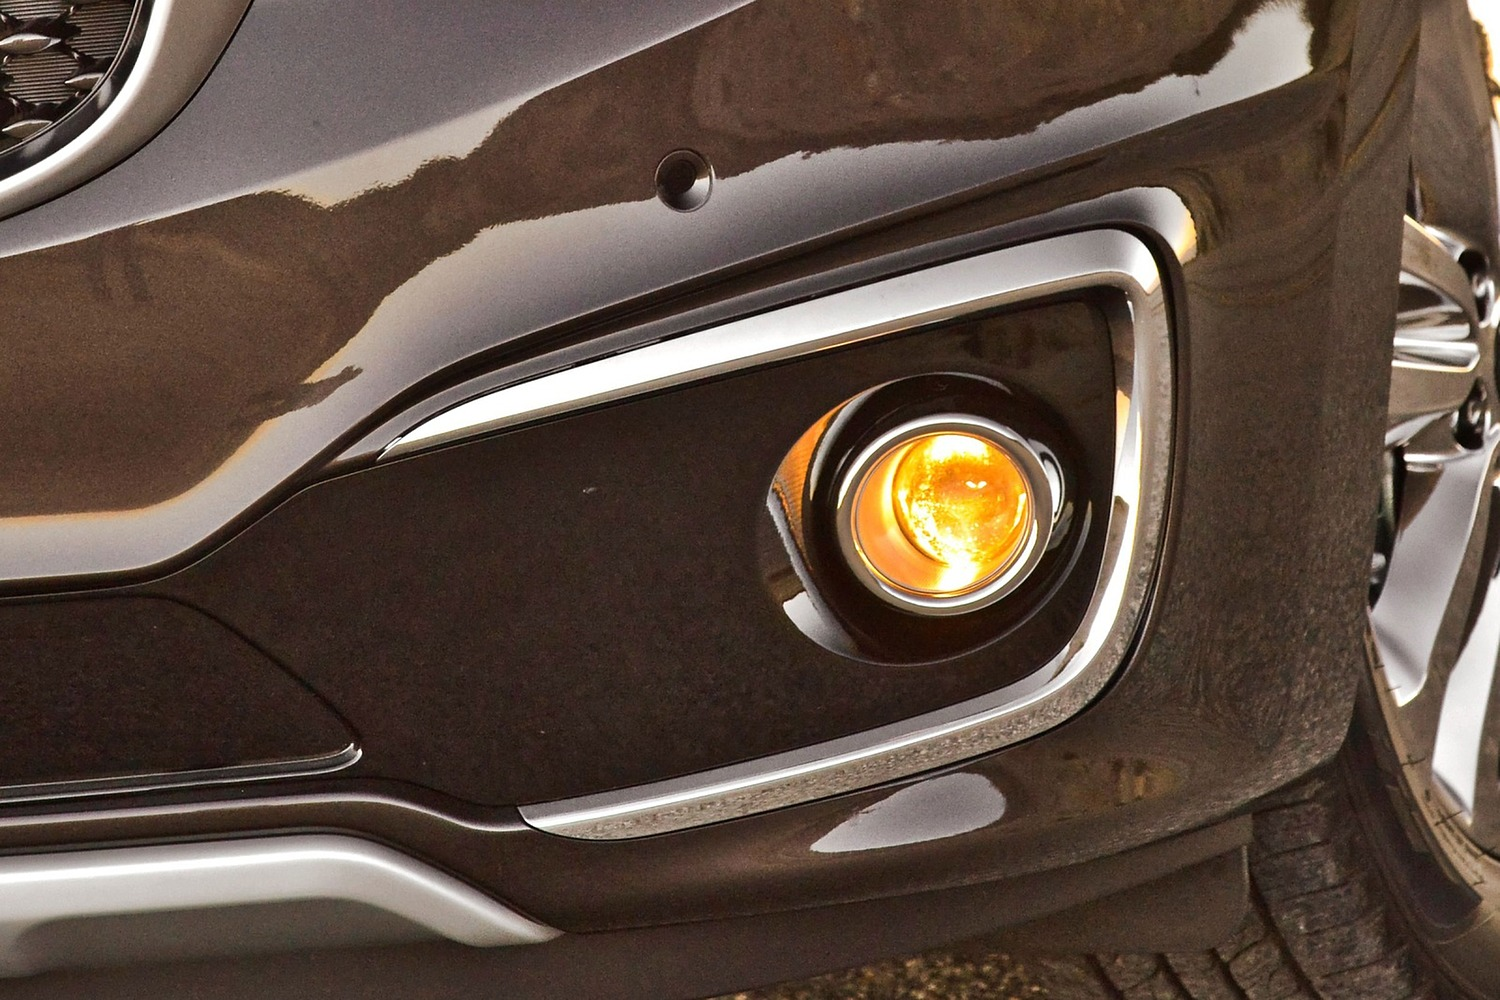 Kia Sedona SX Limited Passenger Minivan Fog Light (2016 model year shown)